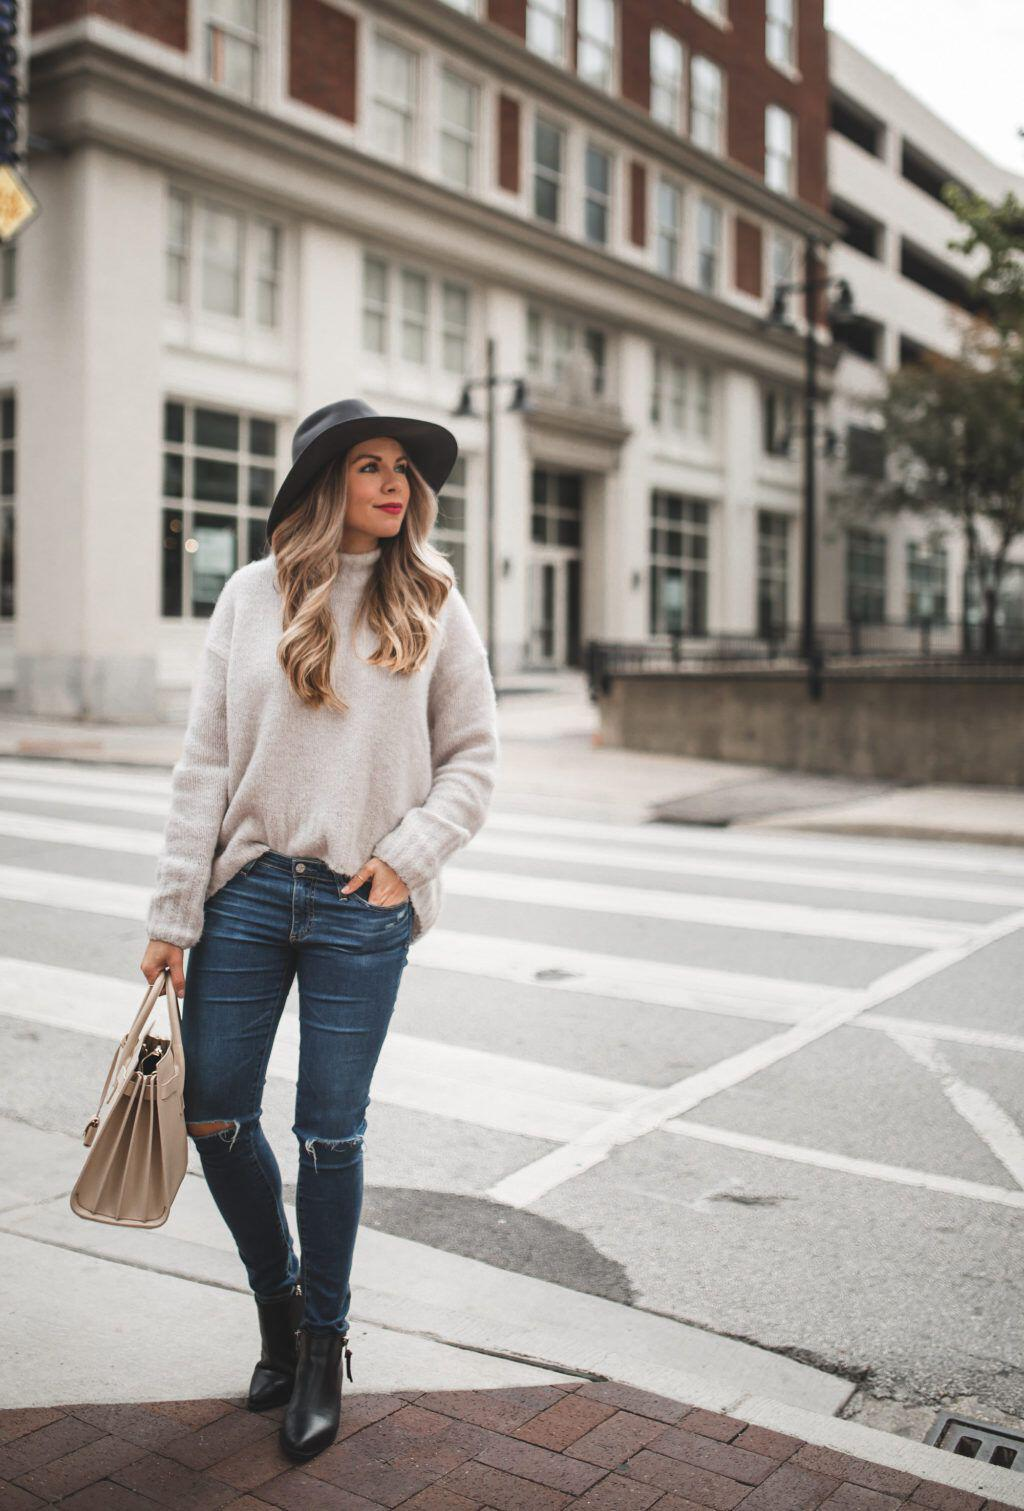 25 Stylish Winter Outfits With Boyfriend Jeans And